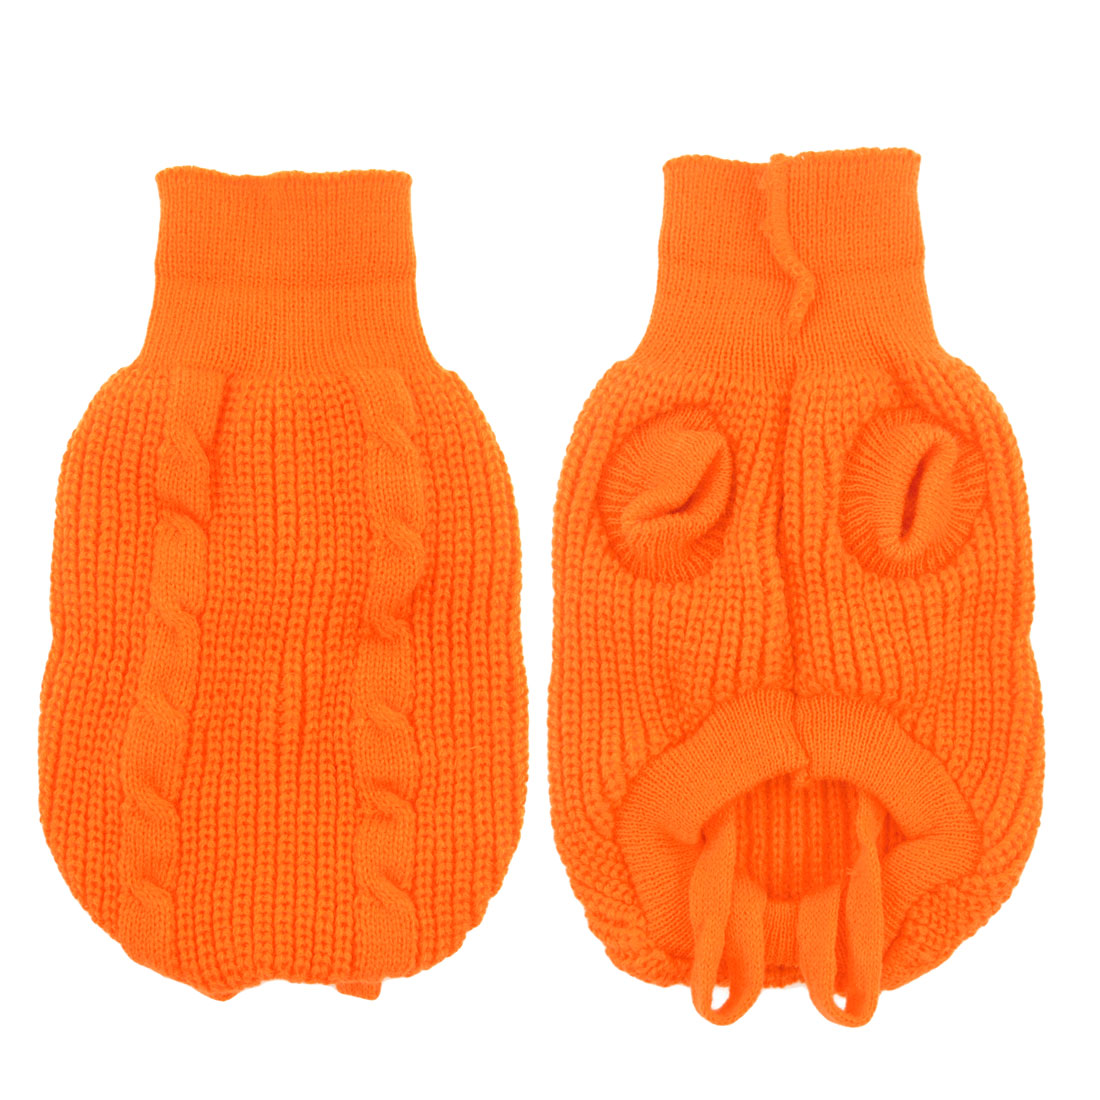 Pet Dog Turtleneck Knitted Cardigan Sweater Costume Orange Size M